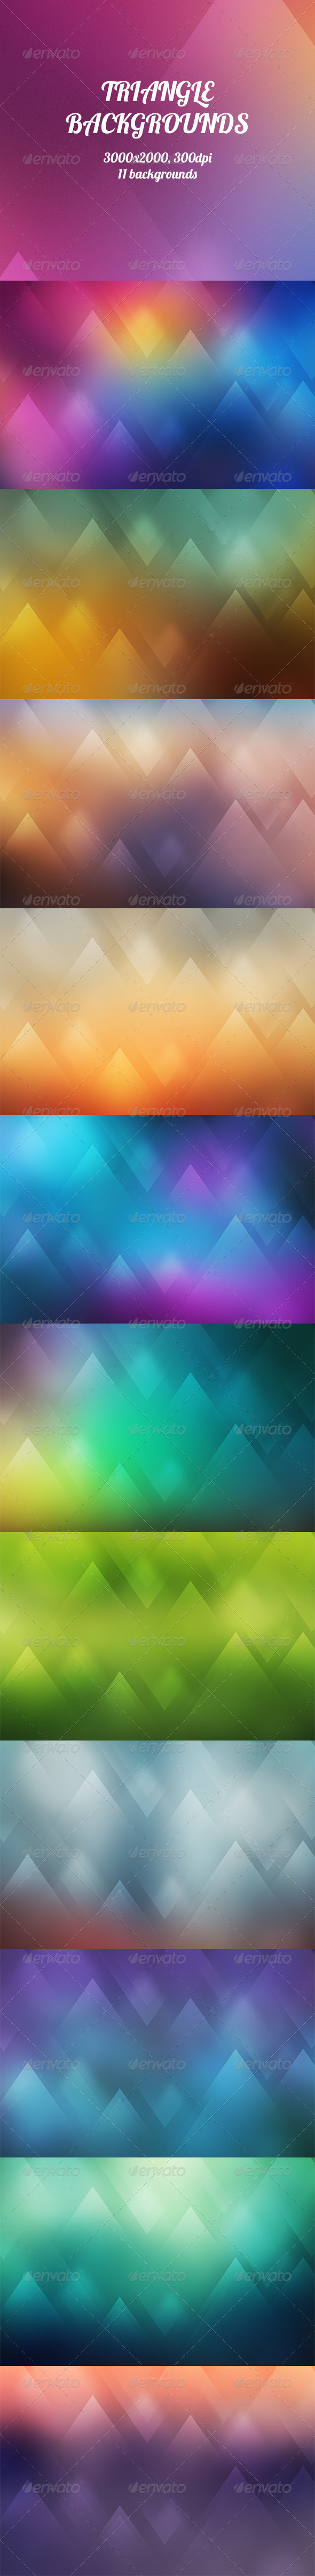 GraphicRiver Triangle Backgrounds 8545289